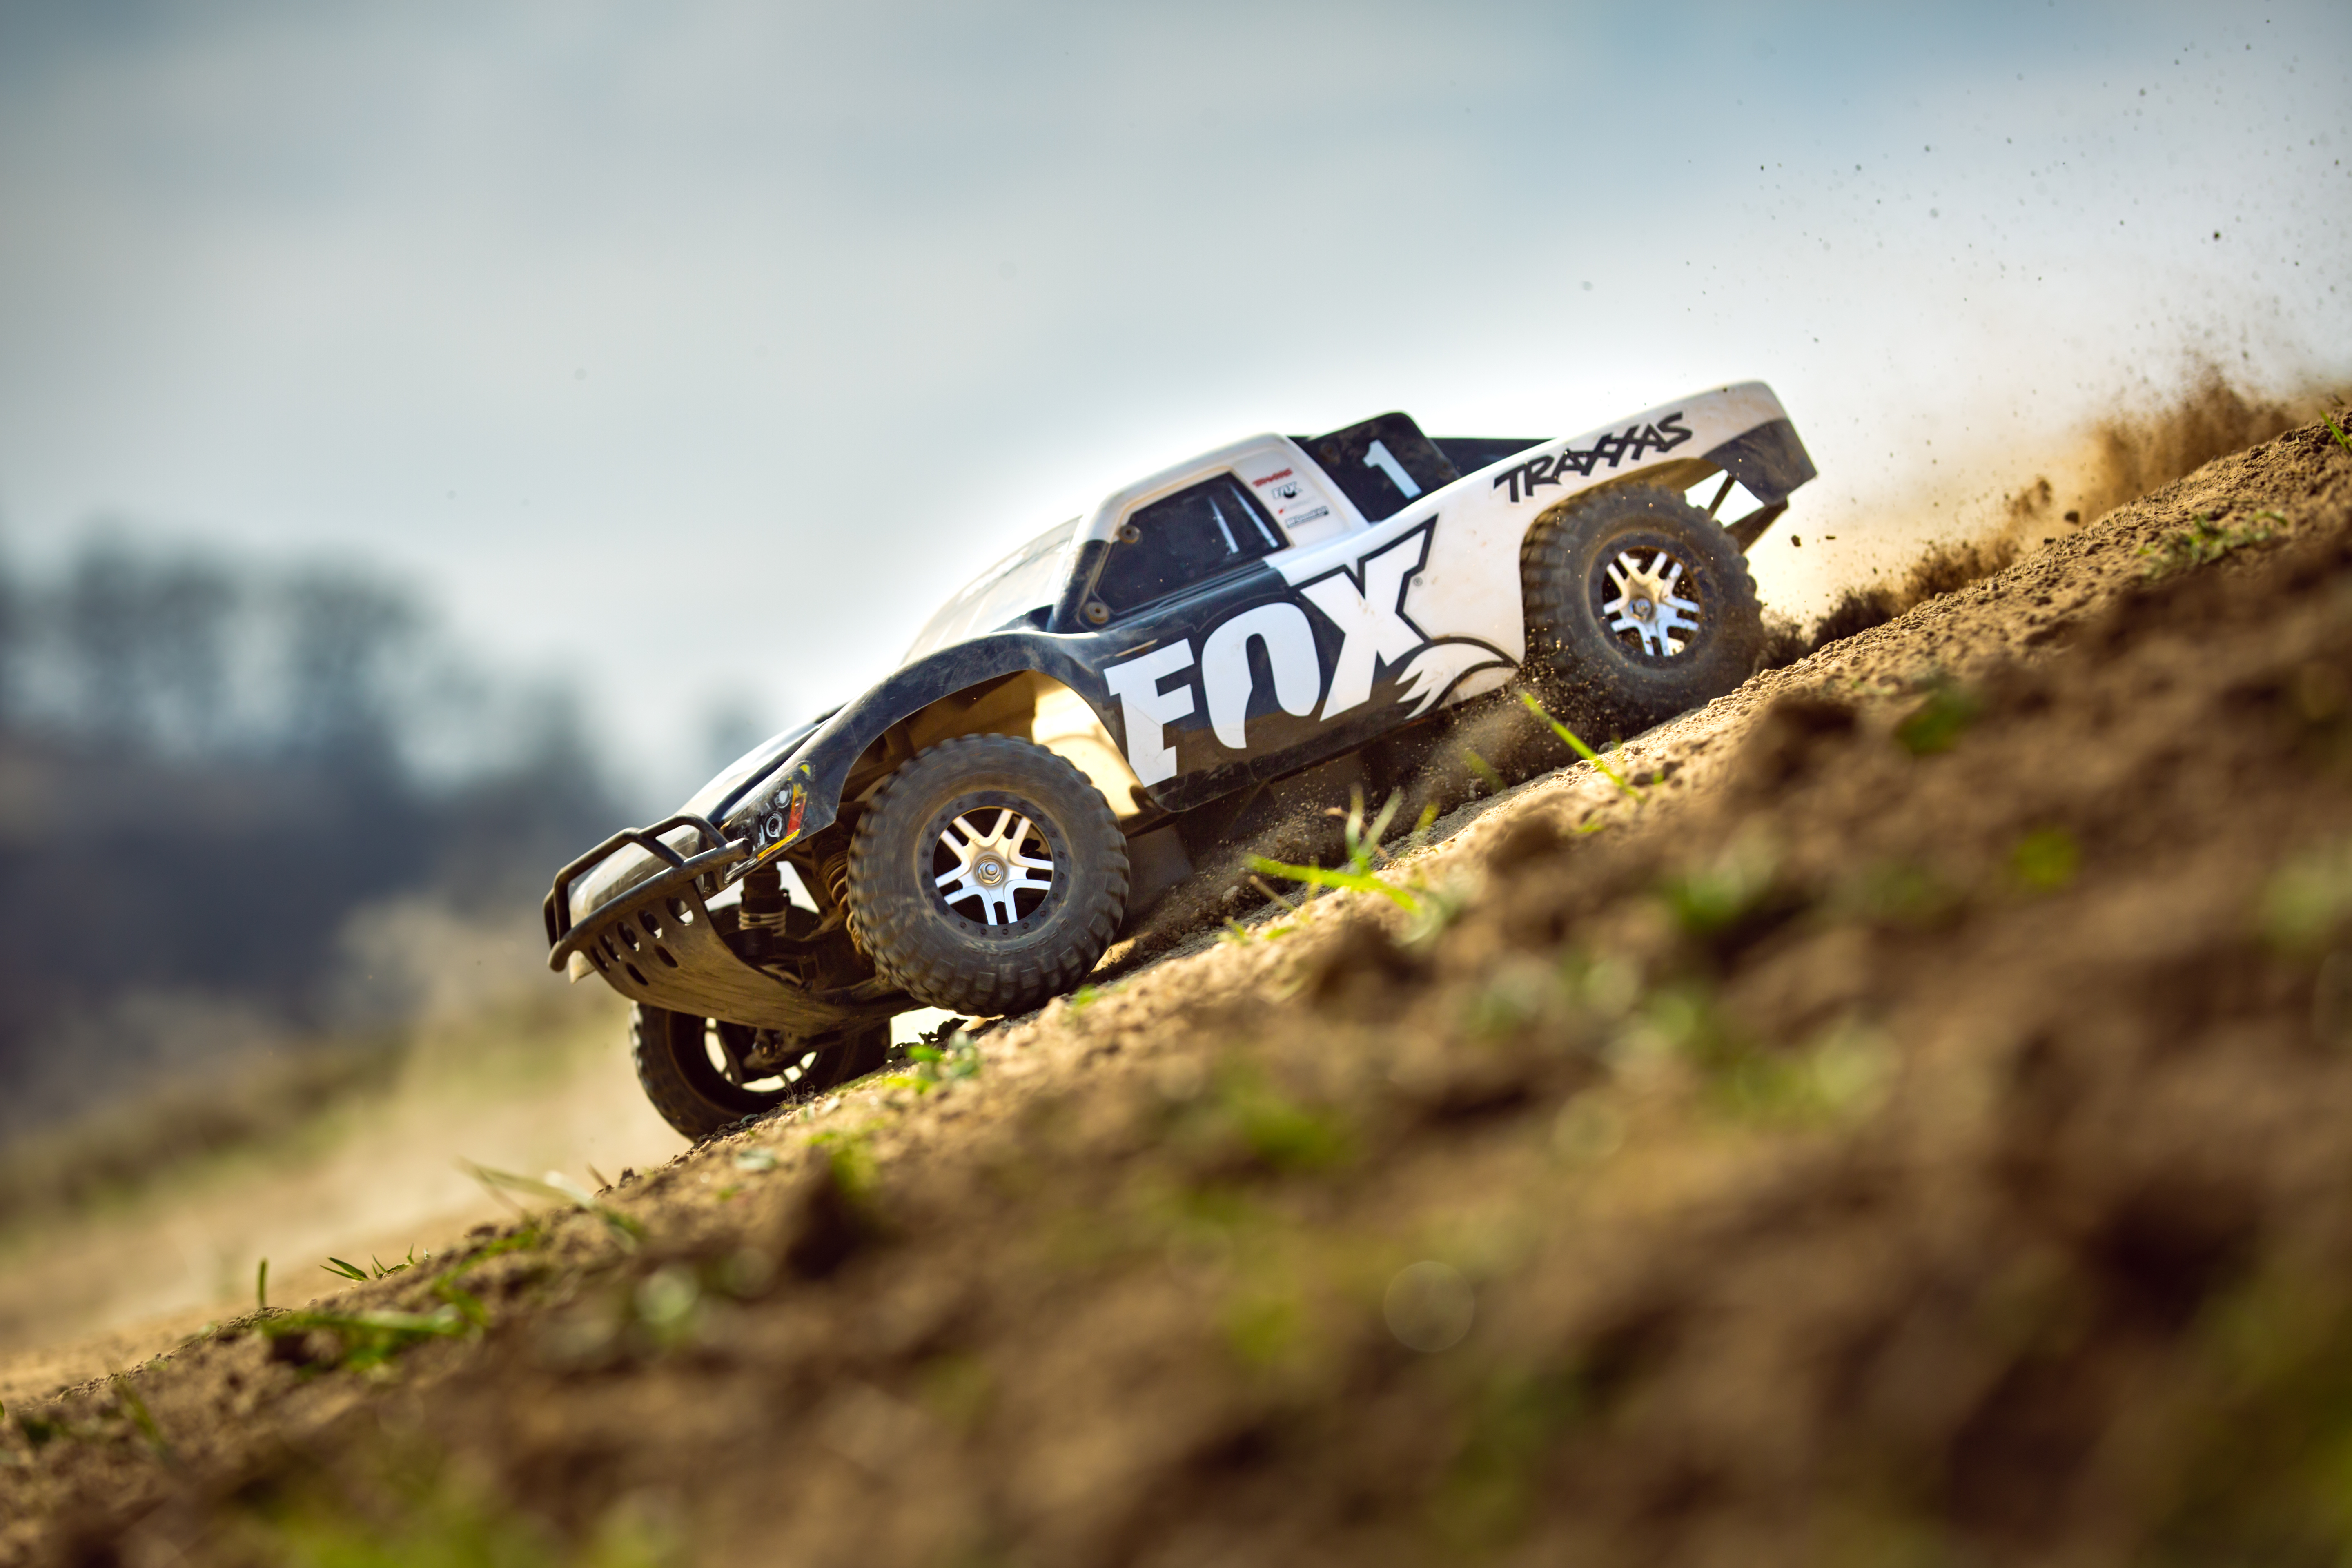 Best Traxxas Rc Cars Tncore